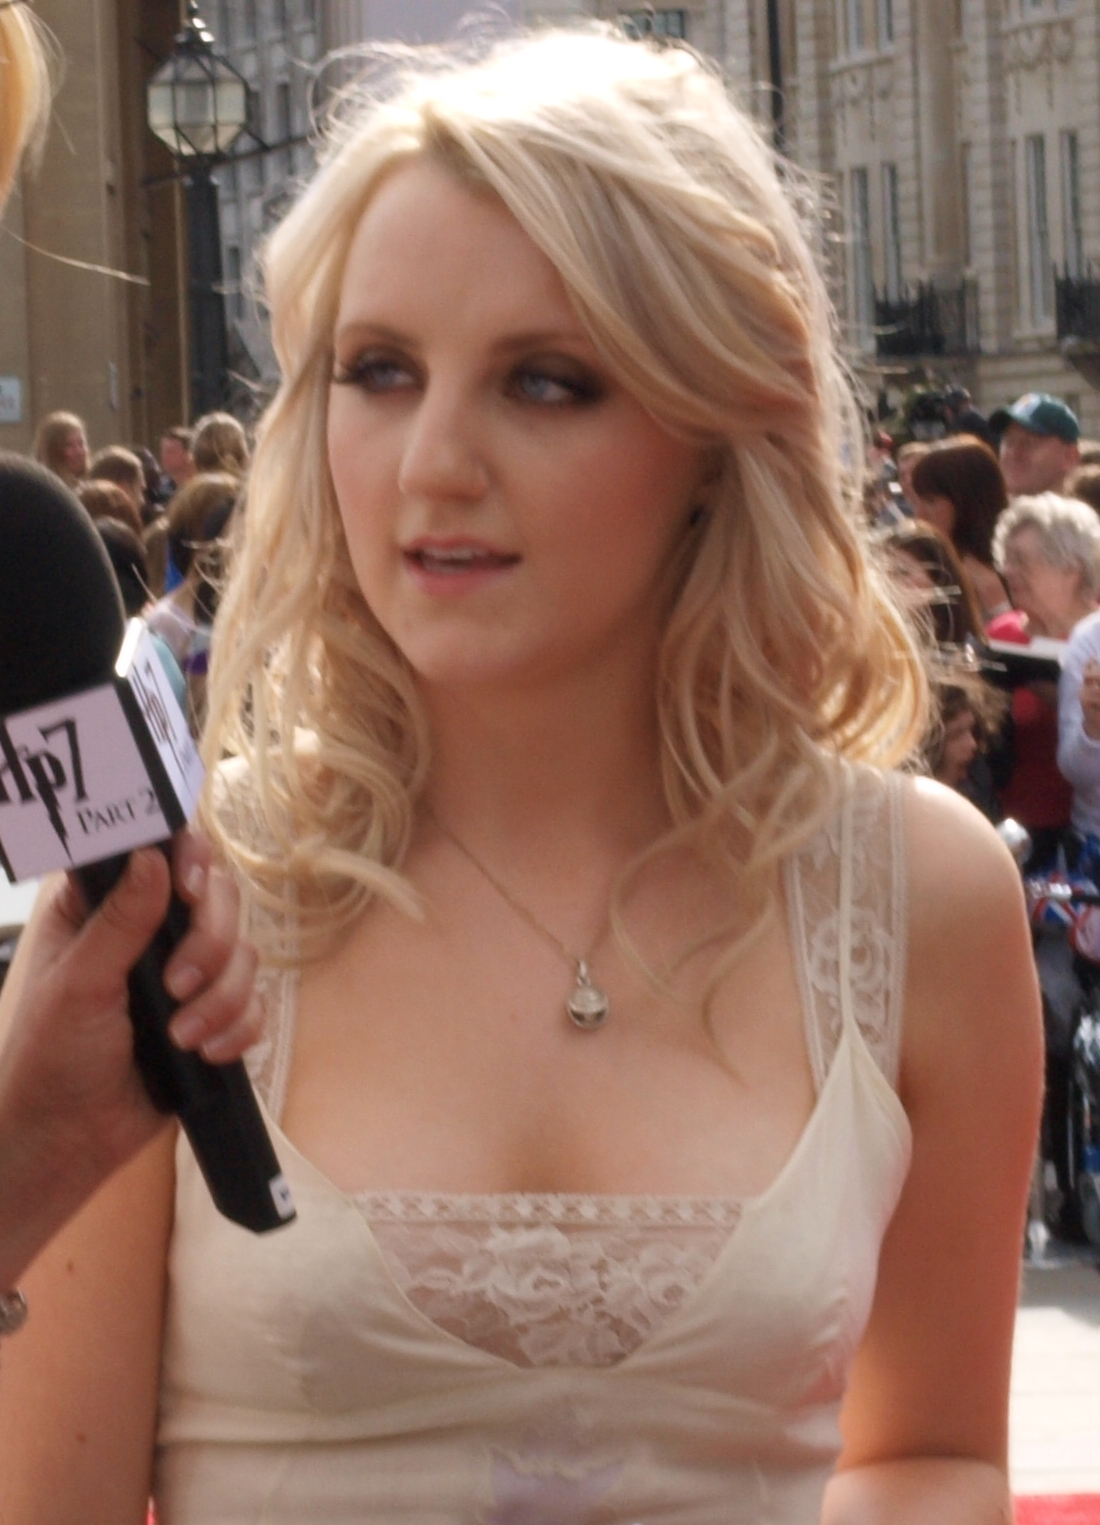 http://1.bp.blogspot.com/-B2leJpkl7Uc/T0KBPEF7U7I/AAAAAAAACHE/nL7Yq5eykLU/s1600/Hot+Evanna+Lynch+-+During+an+Interview.jpg